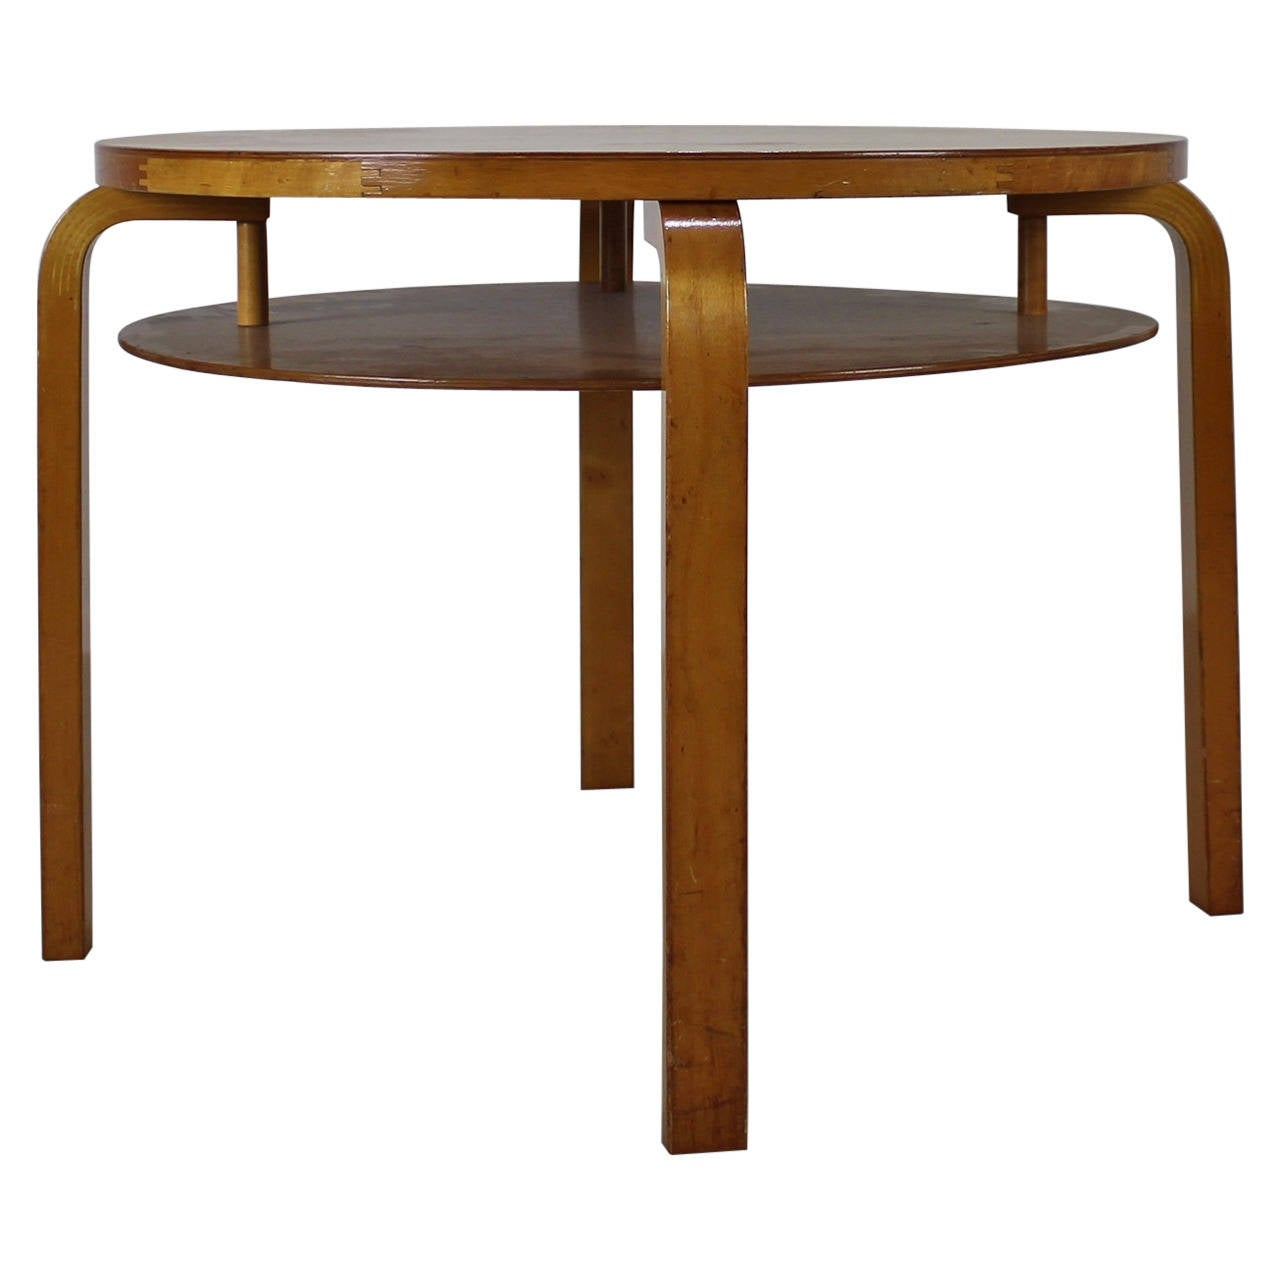 Birchwood Lacquered Alvar Aalto Table No 70 1